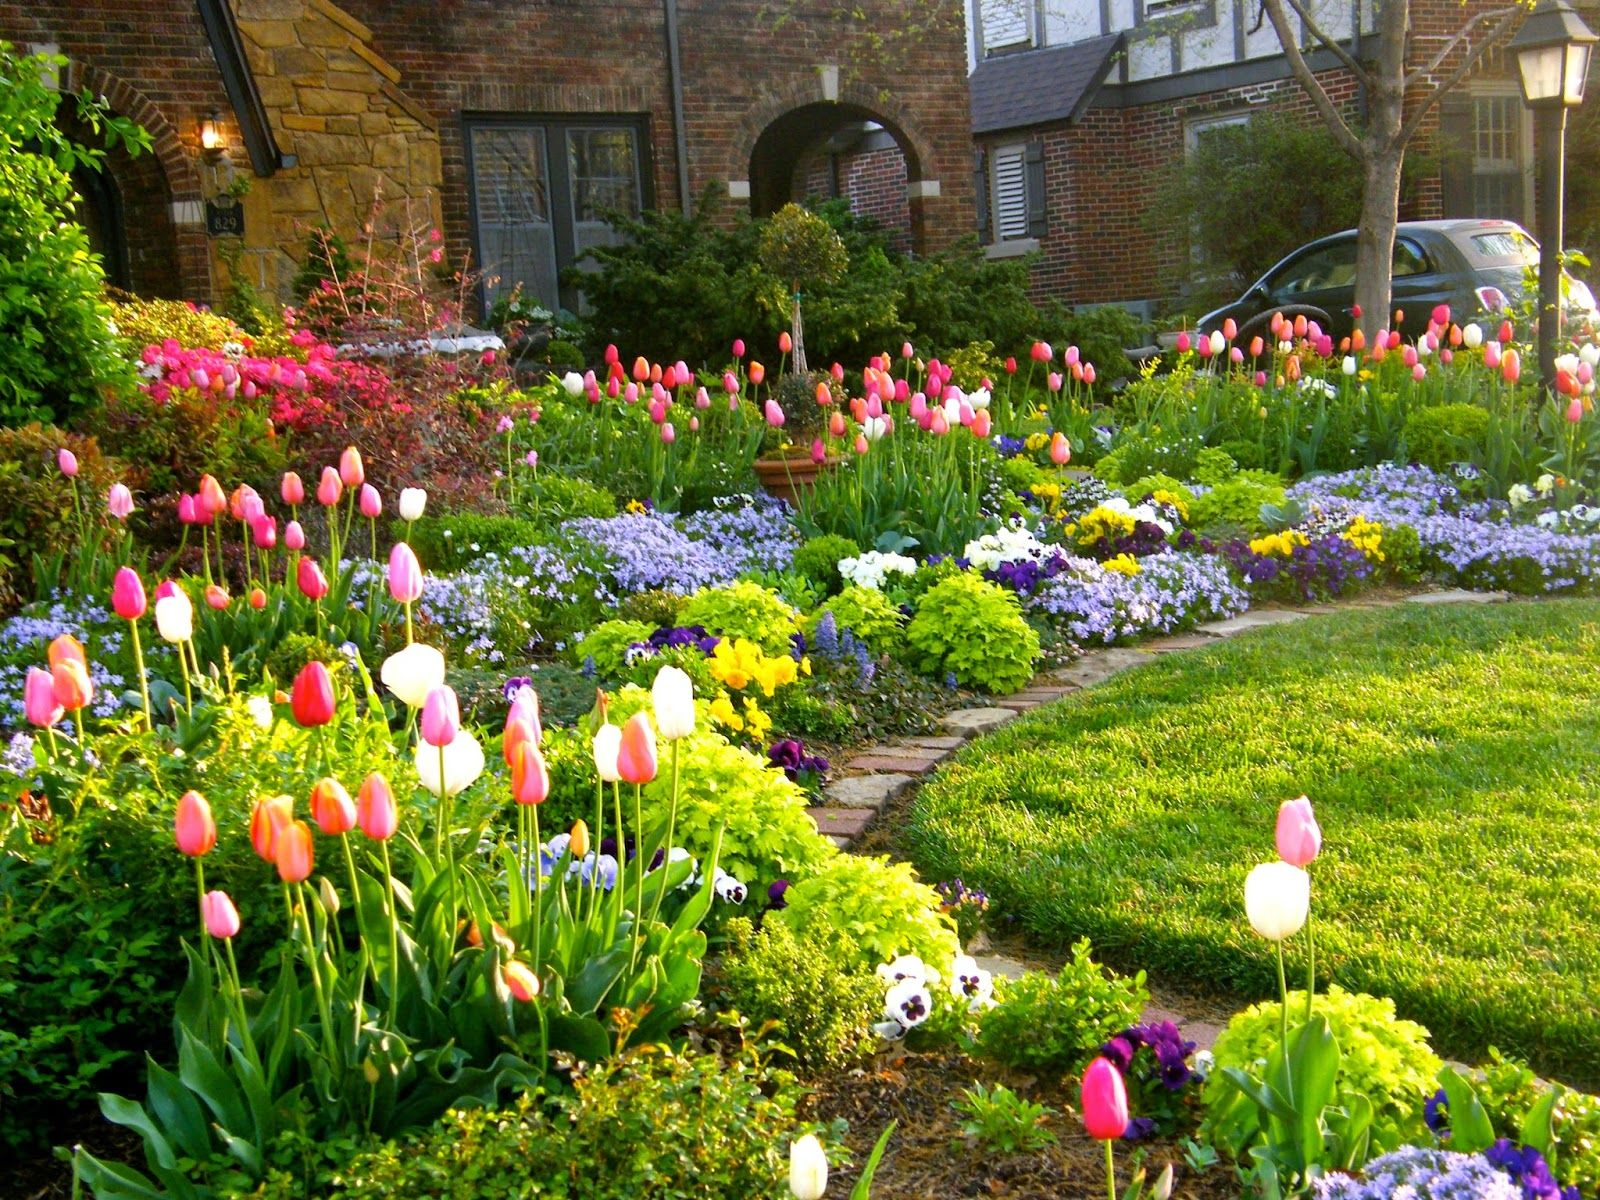 Tulip season front yard garden curb appeal flowers for Flower designs for yards